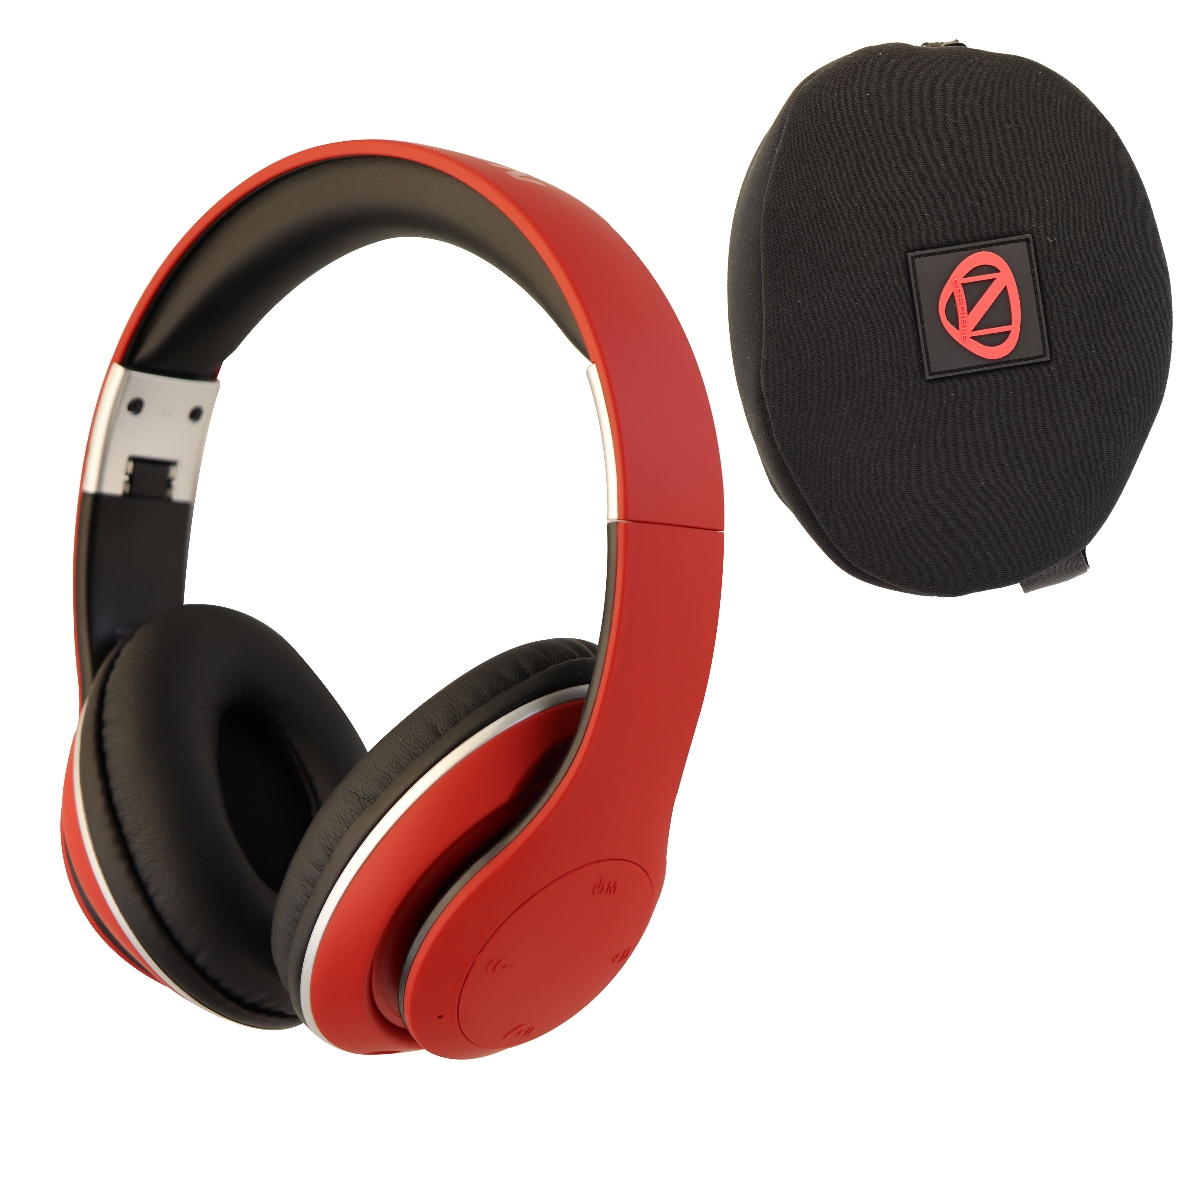 Nick Cannon Ncredible1 Wireless Bluetooth Over-Ear Headphones - Matte Red (Refurbished)